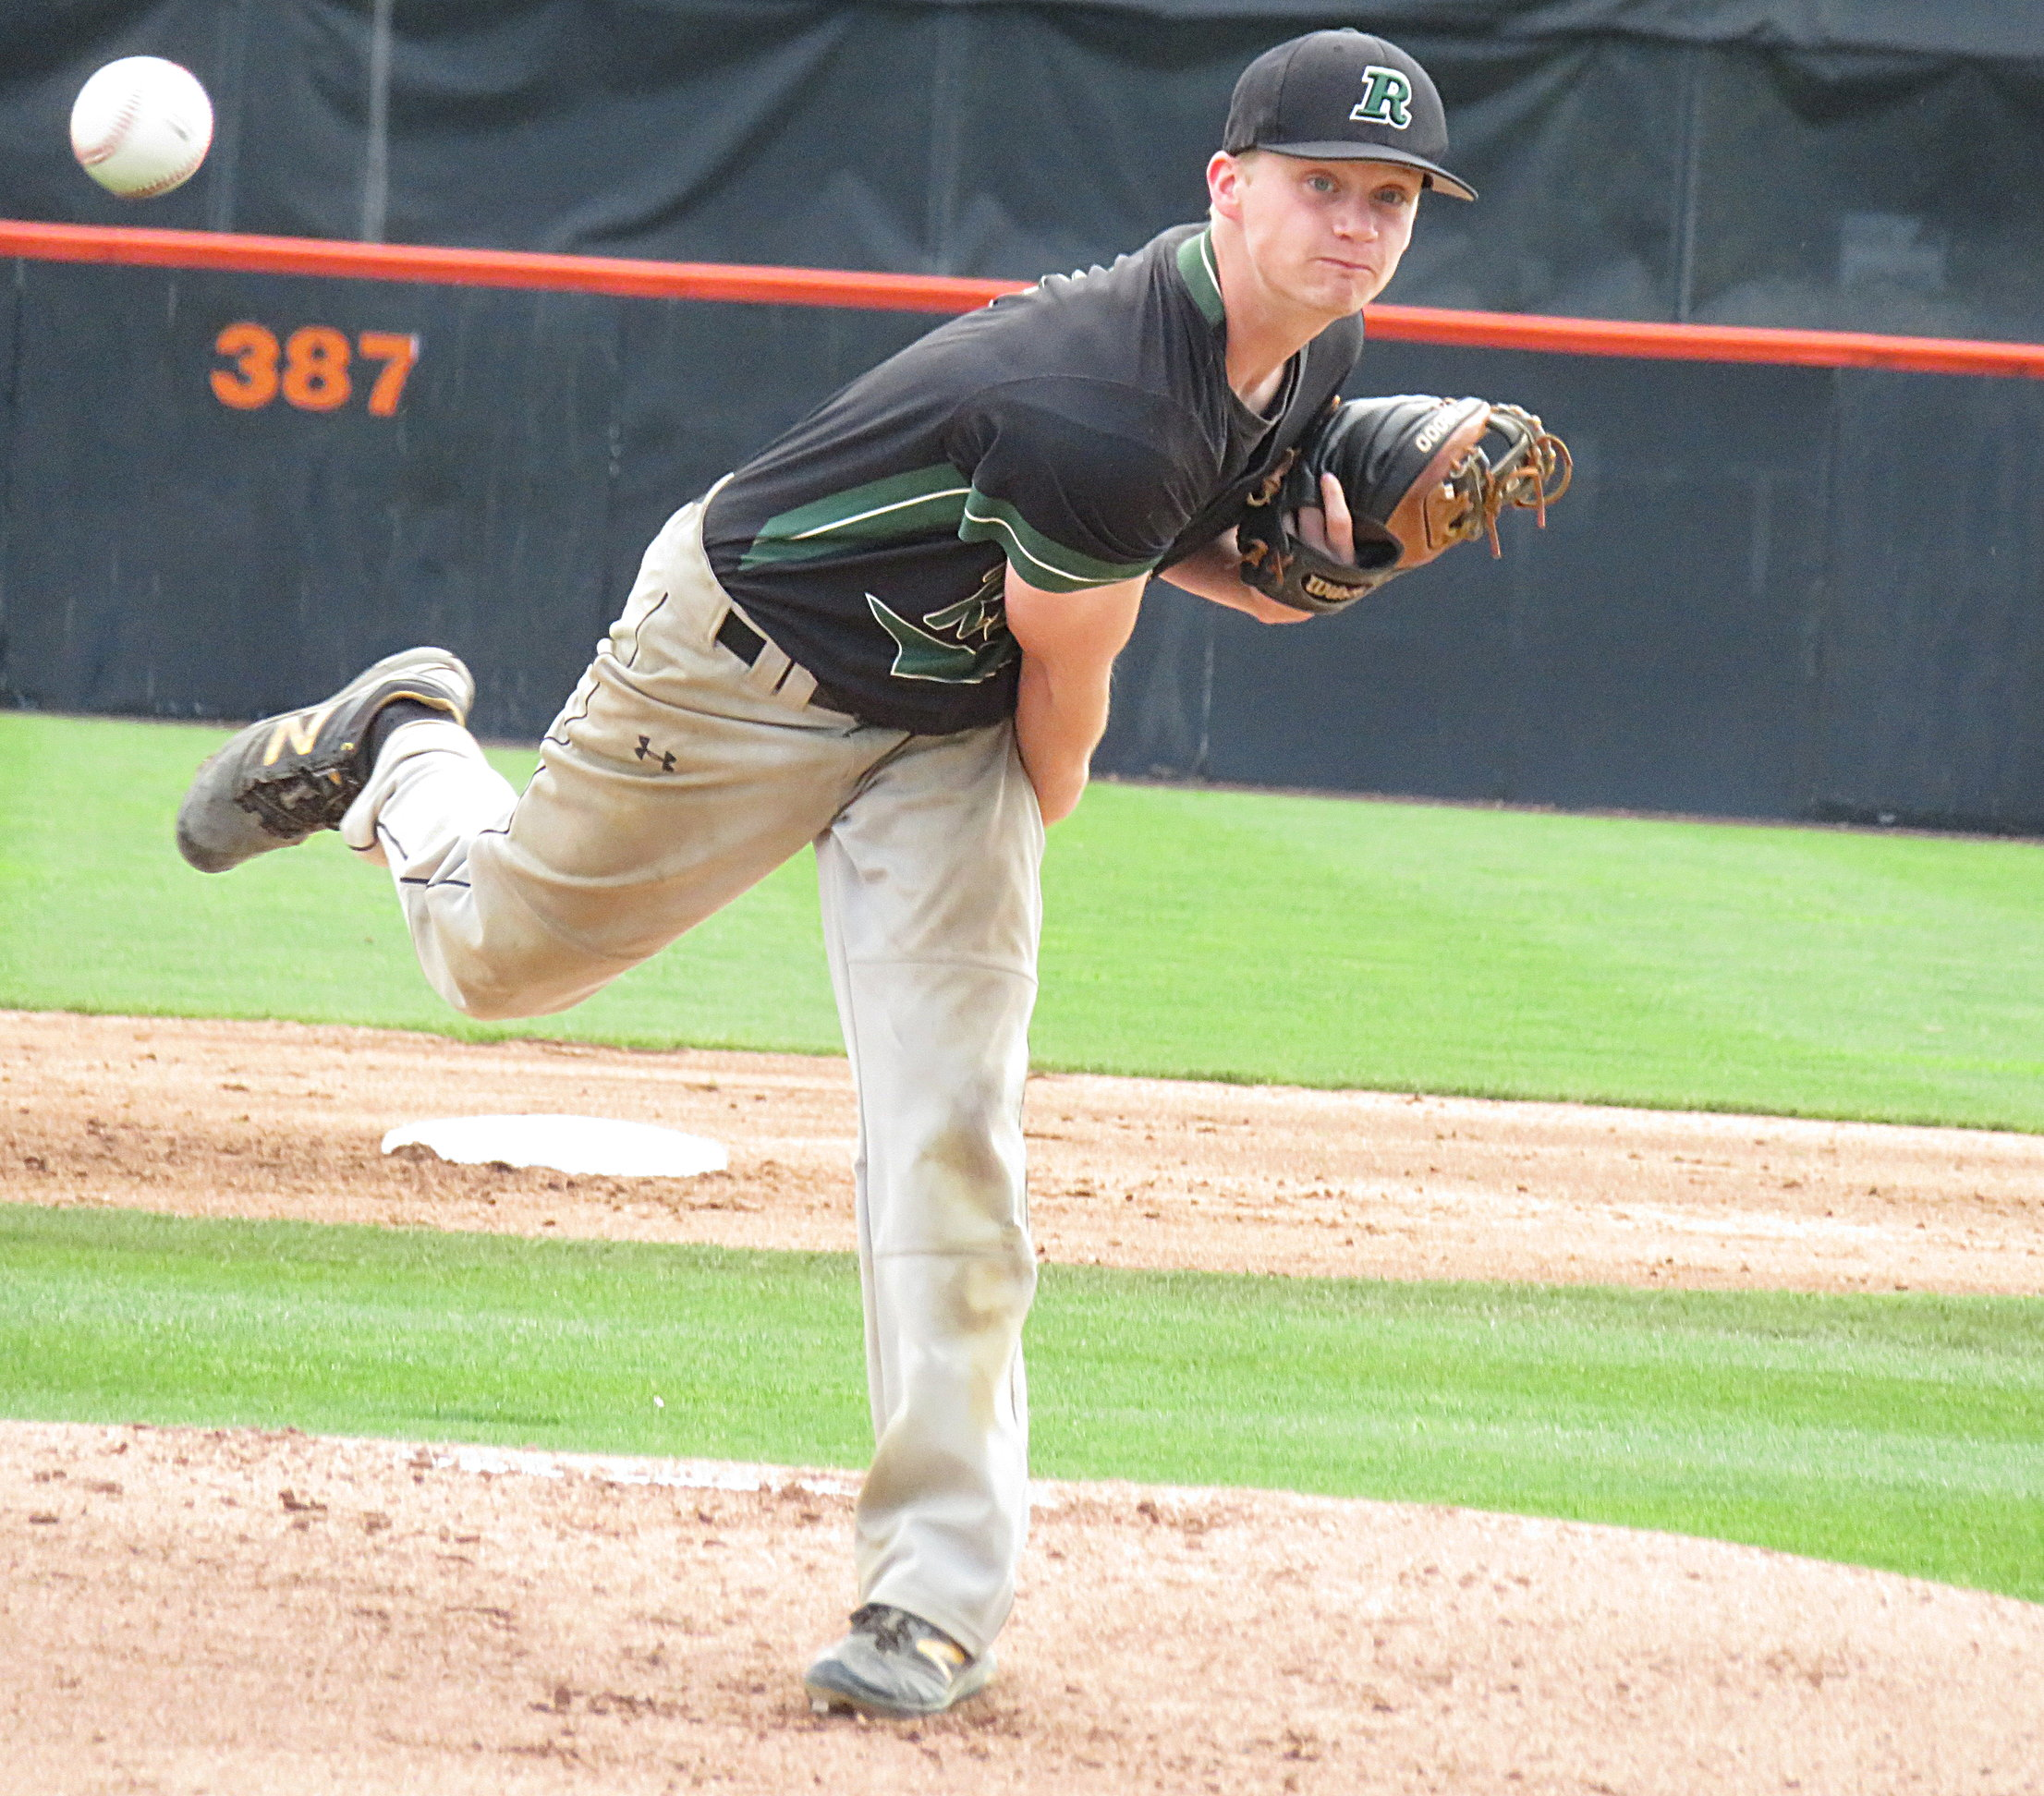 Ratitan´s Zack Johnston improved to 8-1 with the complete game win in a 5-1 victory over Haddonfield.